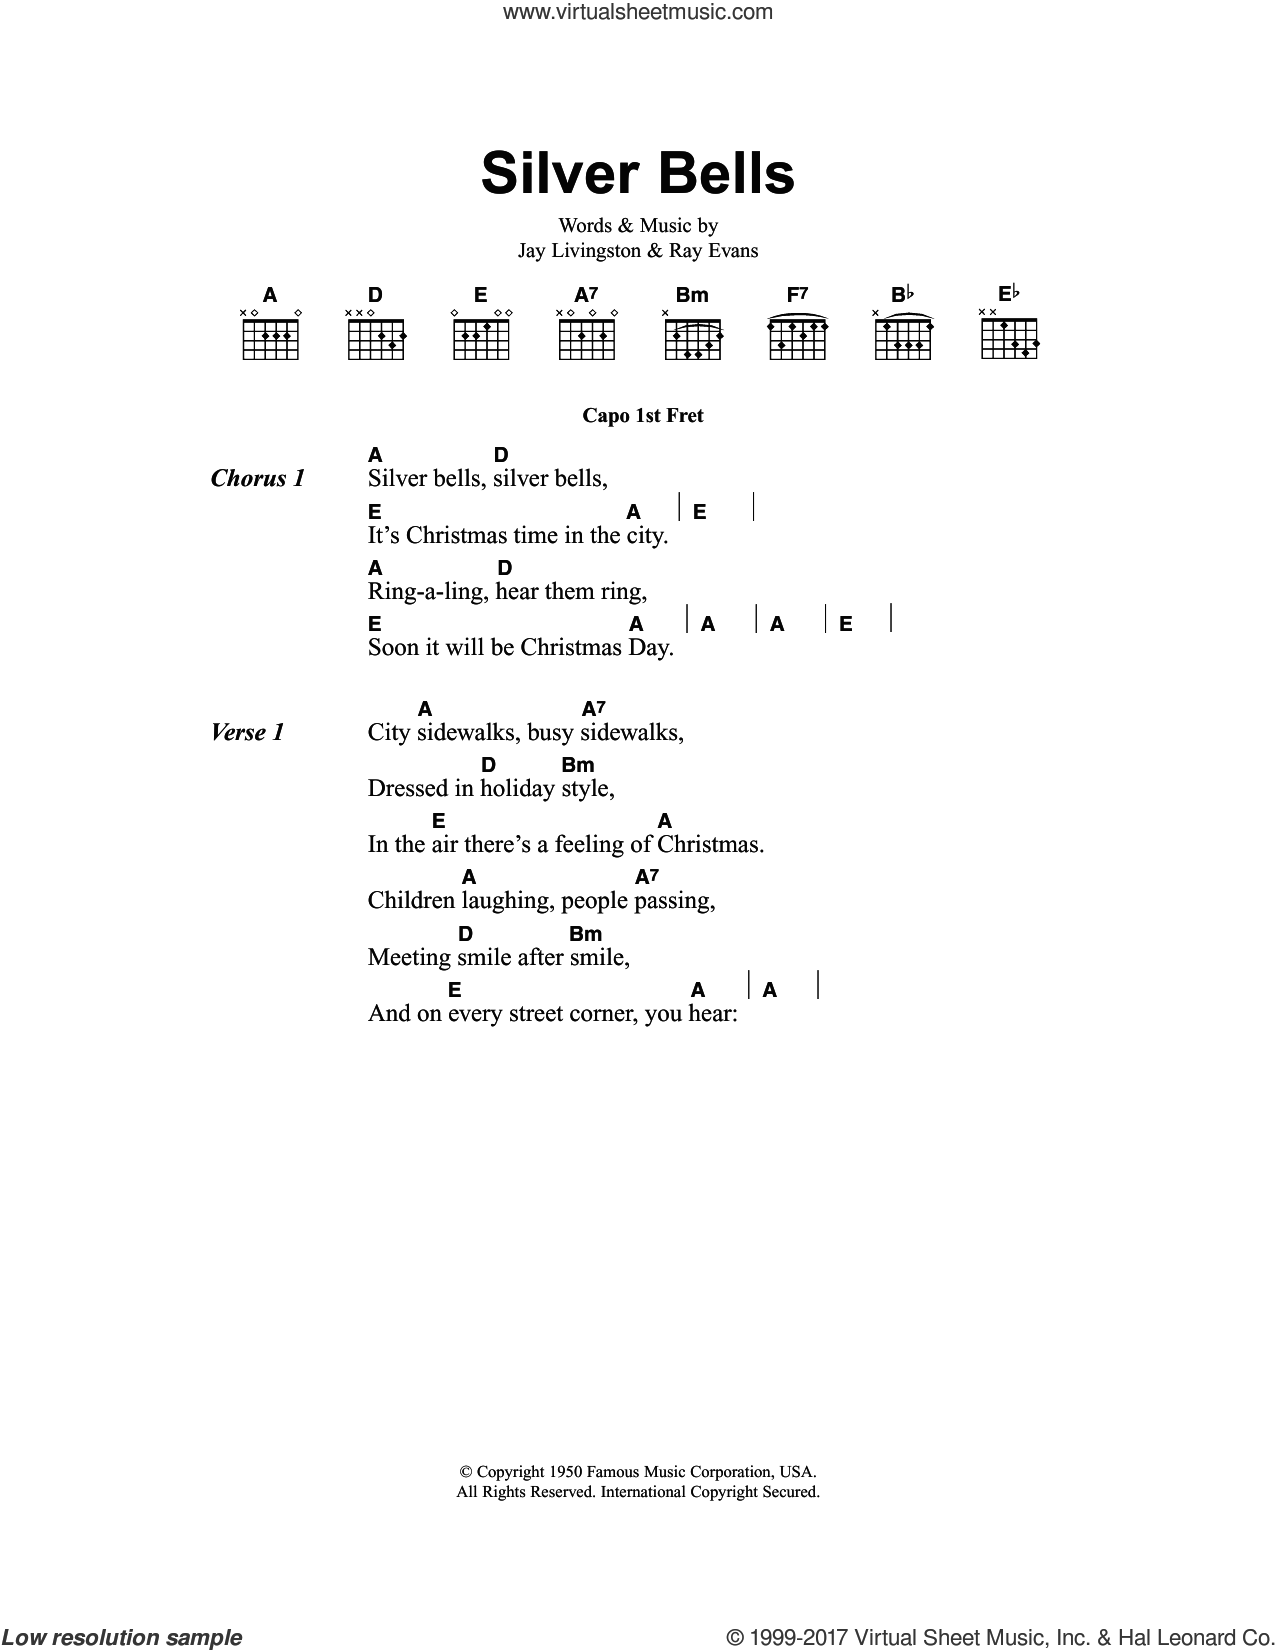 Silver Bells sheet music for guitar (chords) by Jay Livingston and Ray Evans, intermediate skill level